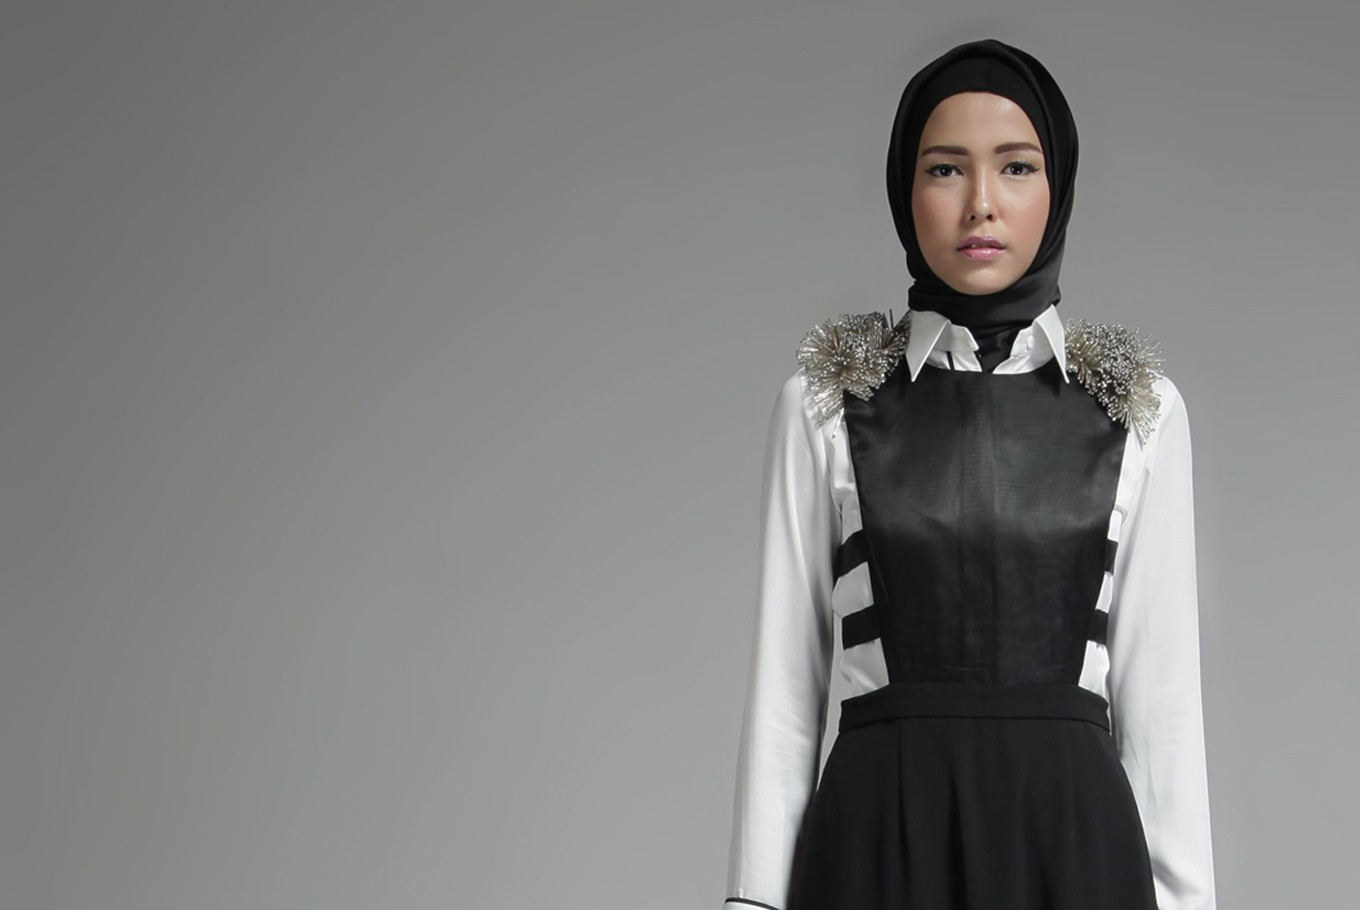 533c9a22306c Six Muslim fashion wear designers to adore - People - The Jakarta Post